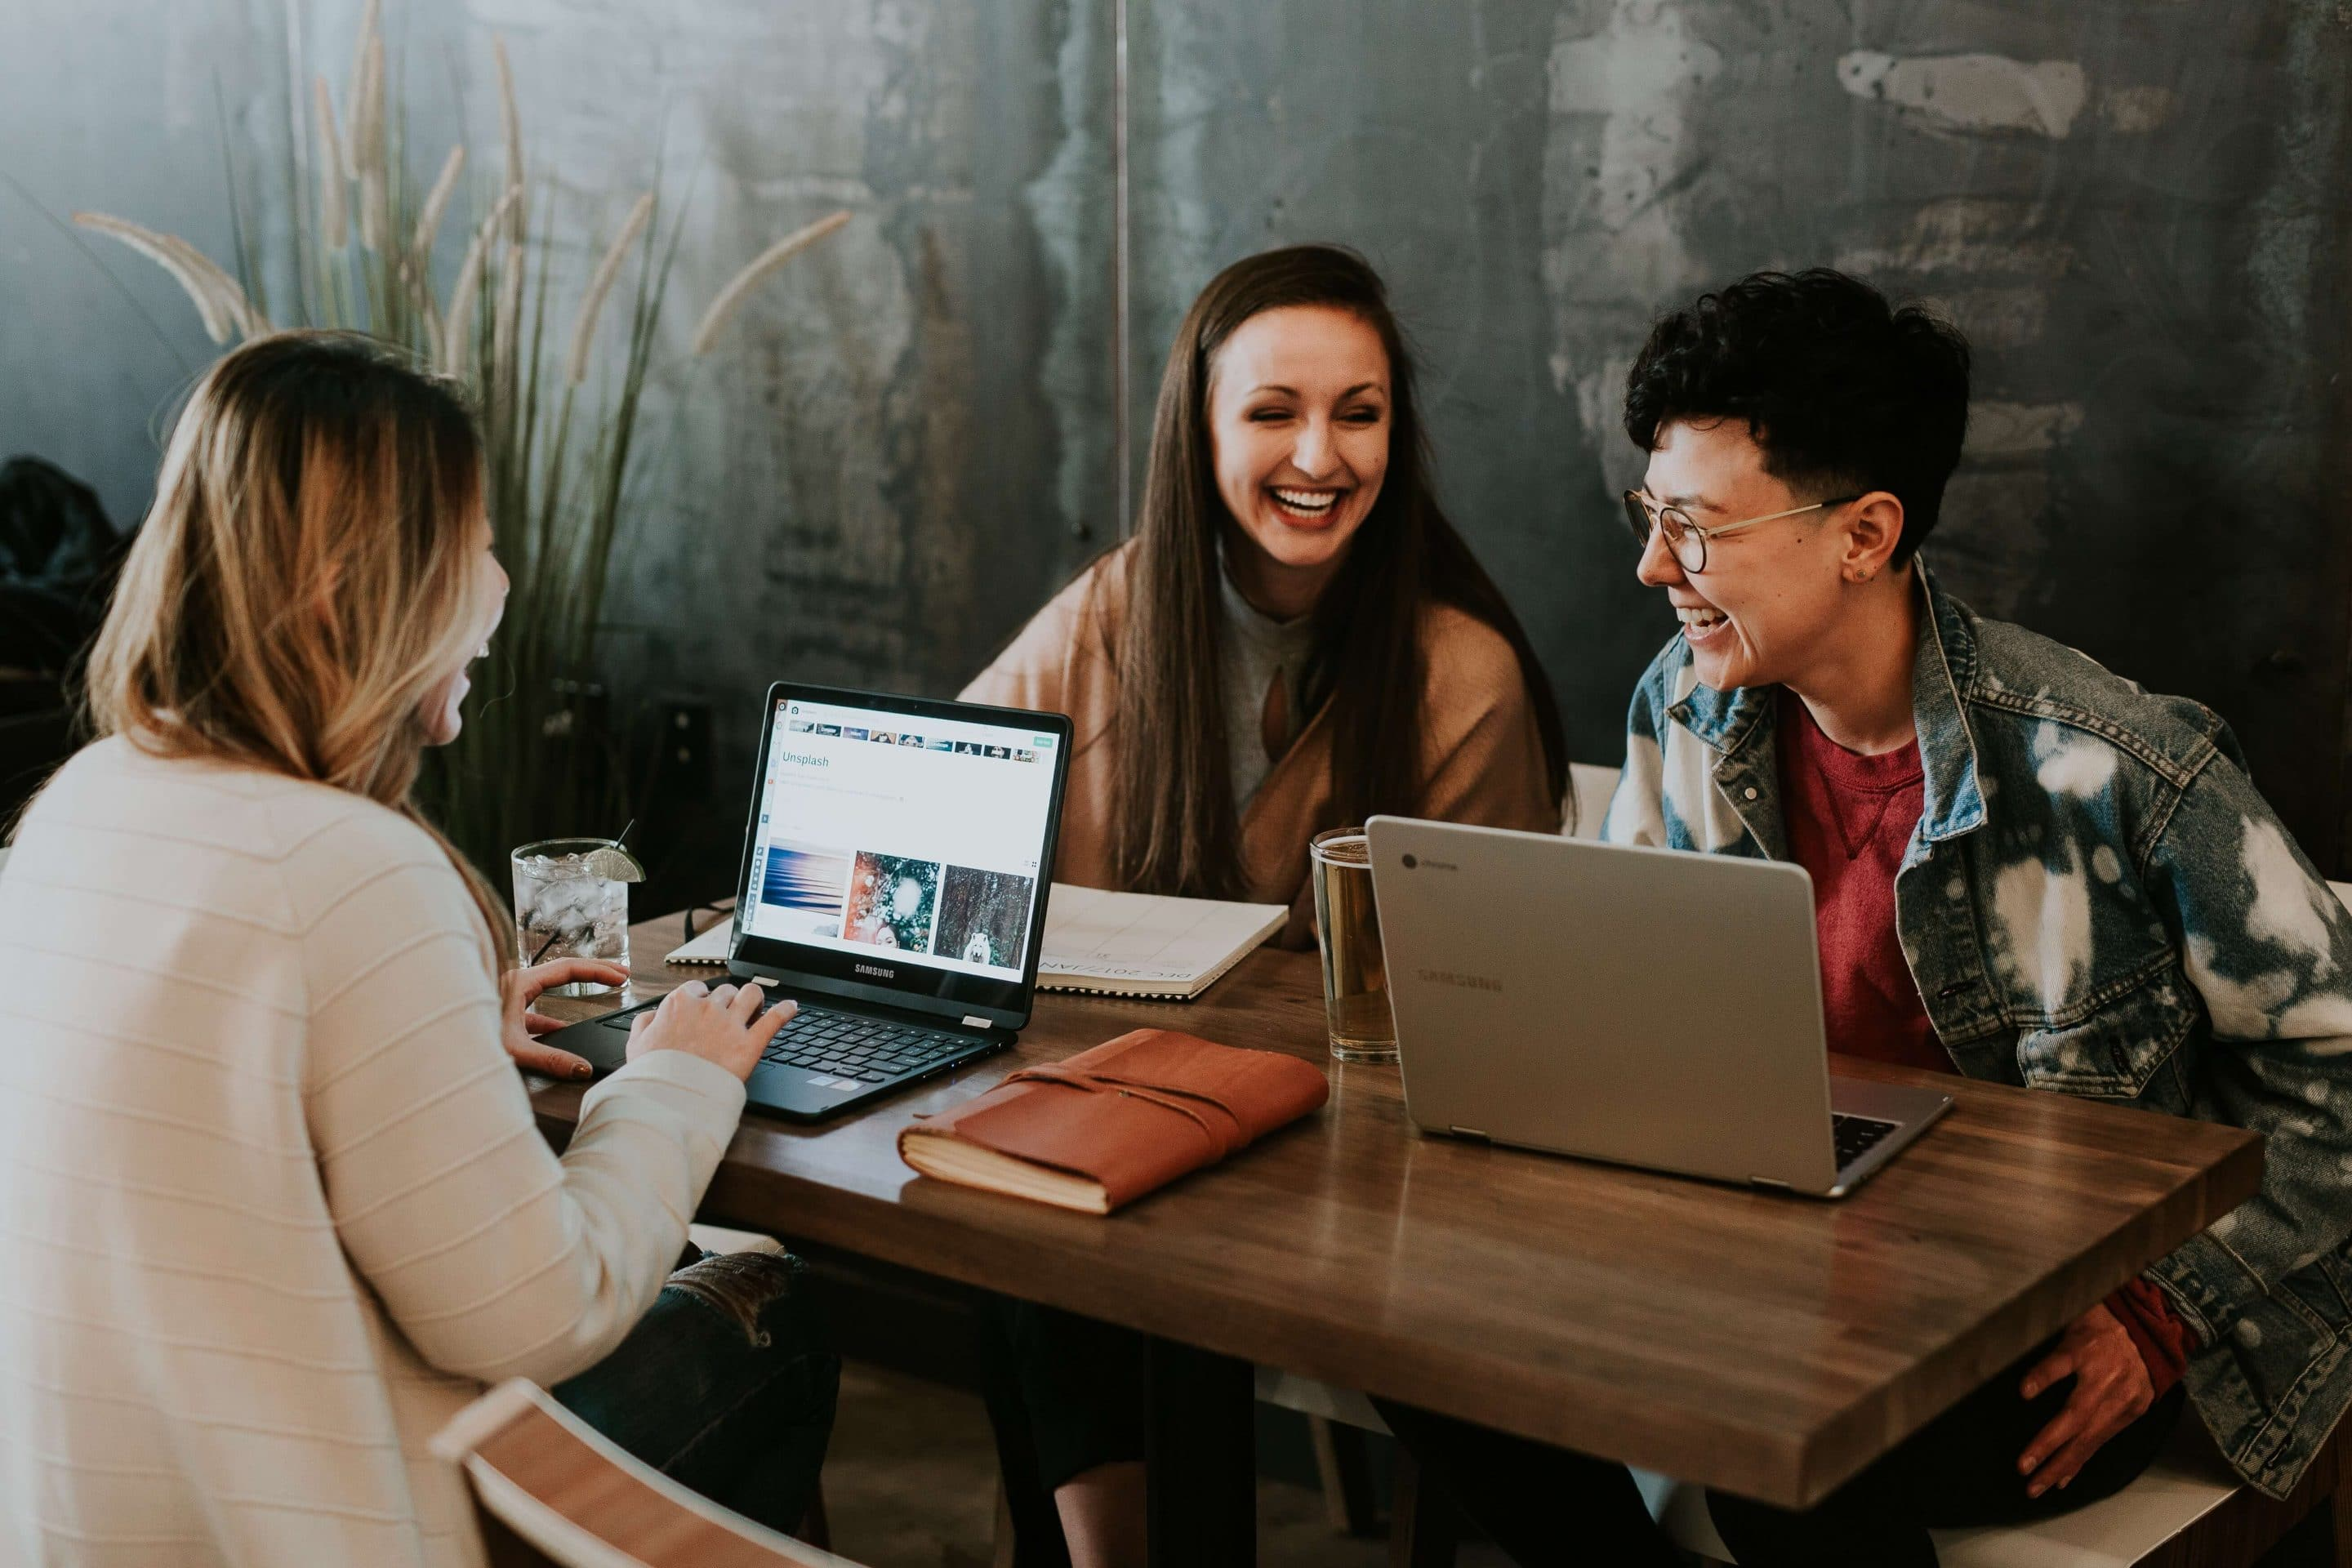 7 Signs Your Business is Ready to Take on a Team